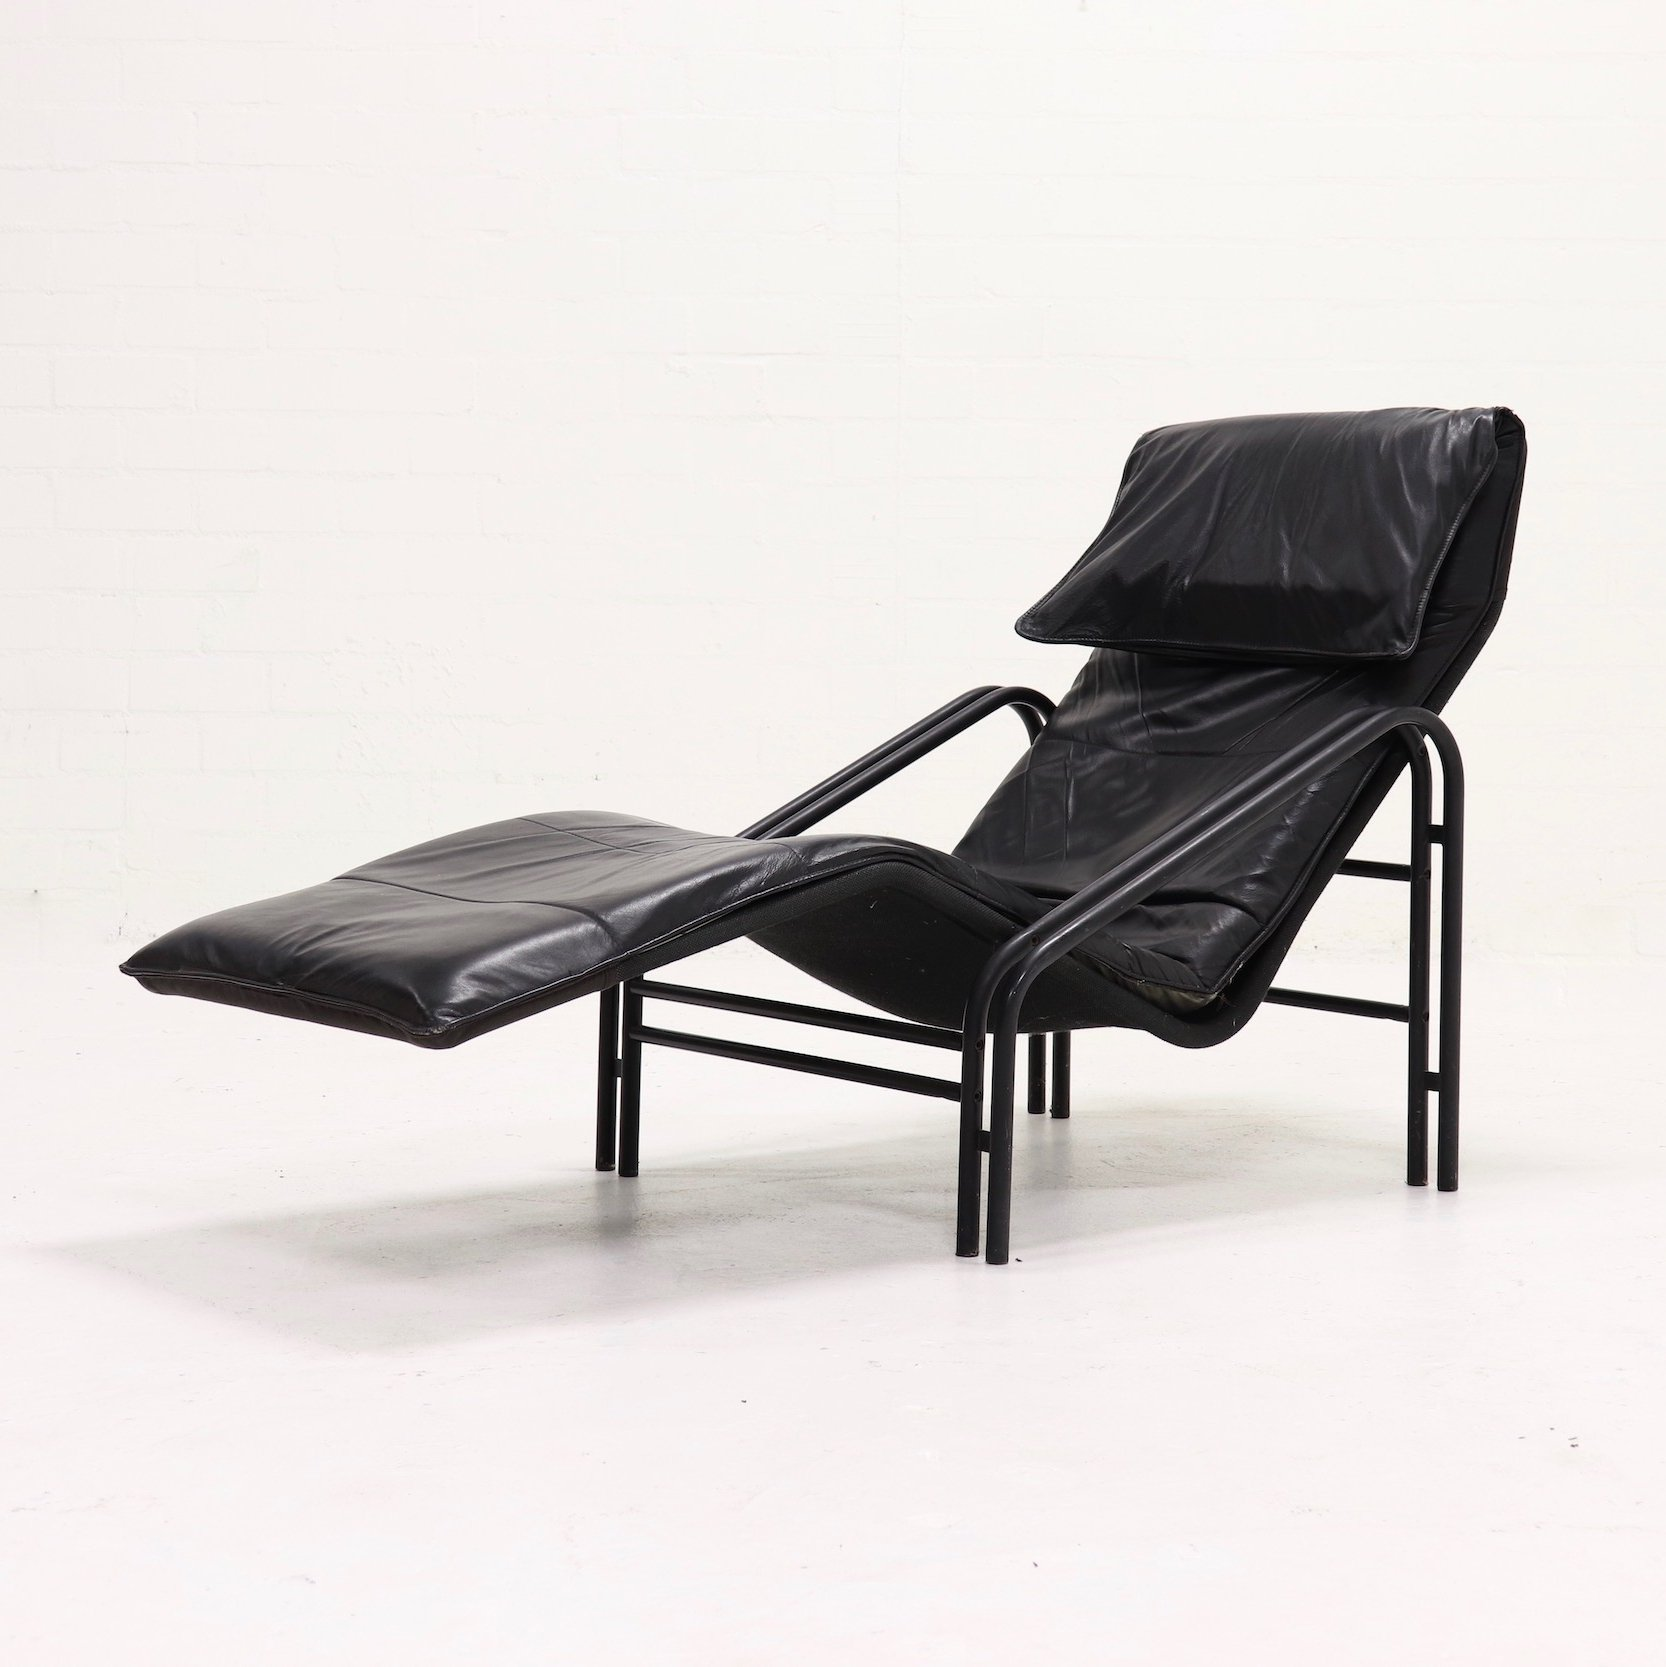 Superb Leather Chaise Longue Lounge Chair 1980S Andrewgaddart Wooden Chair Designs For Living Room Andrewgaddartcom